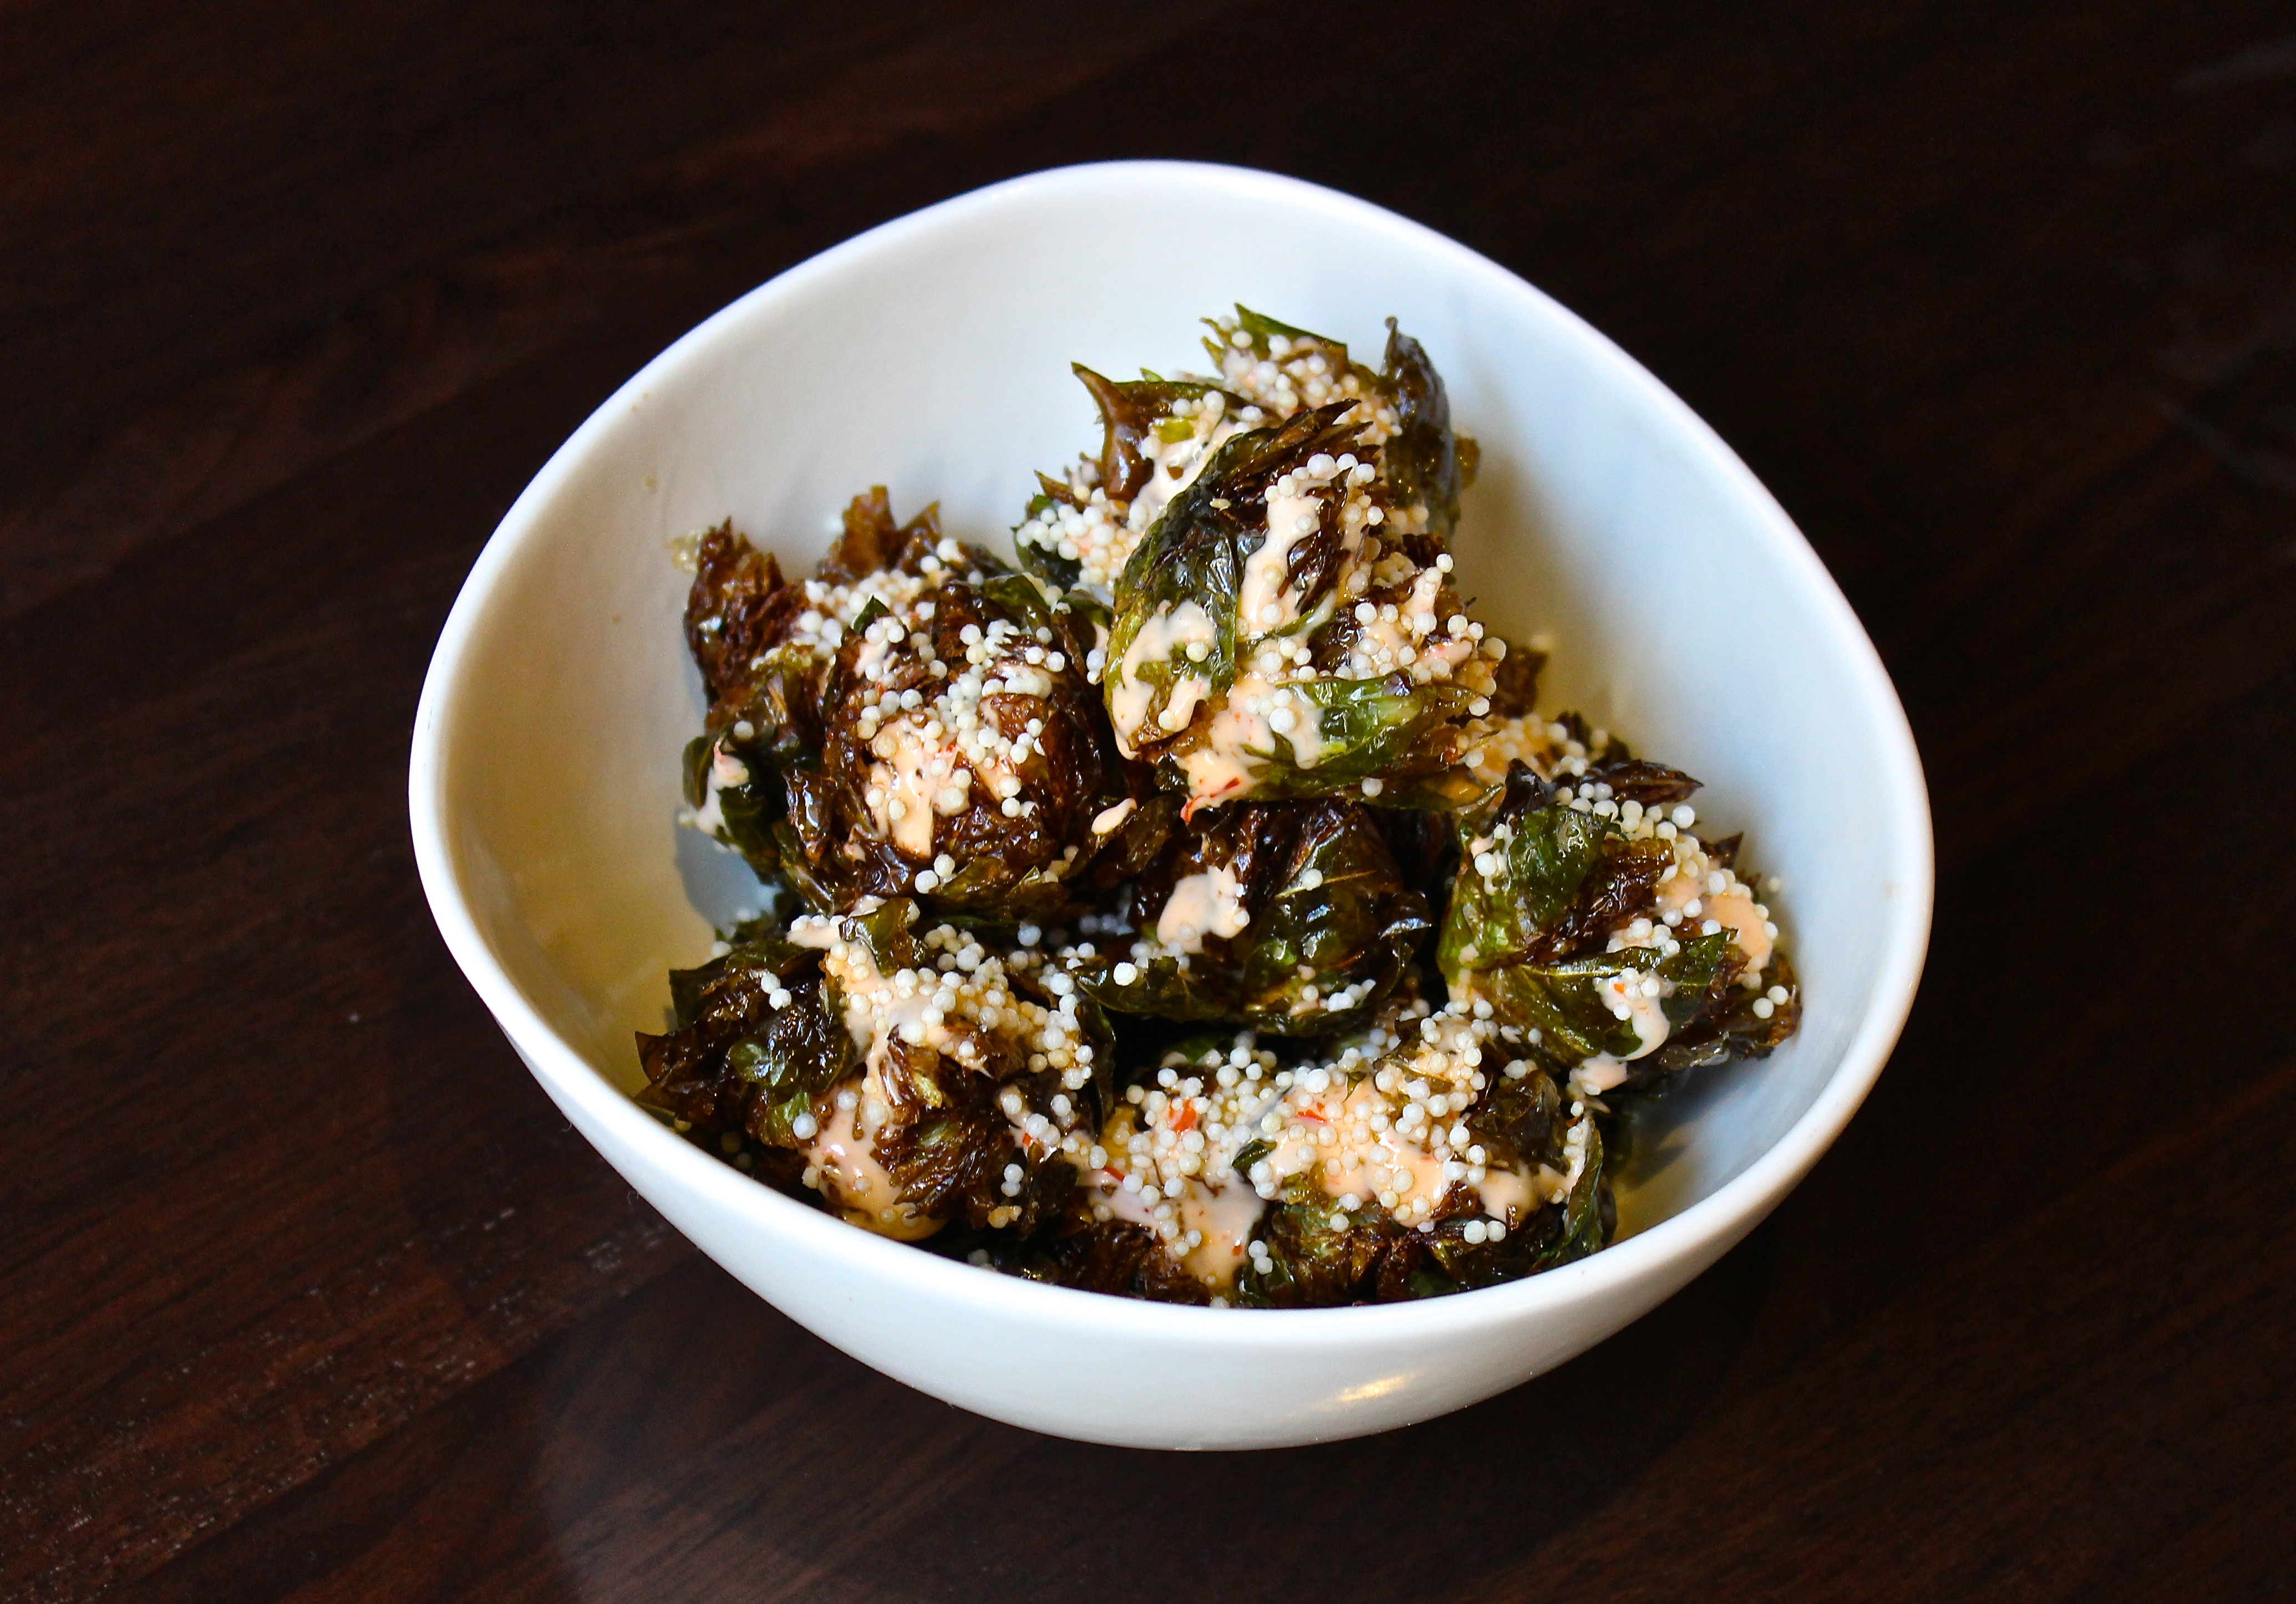 Crispy brussels sprouts at the Yona pop-up.